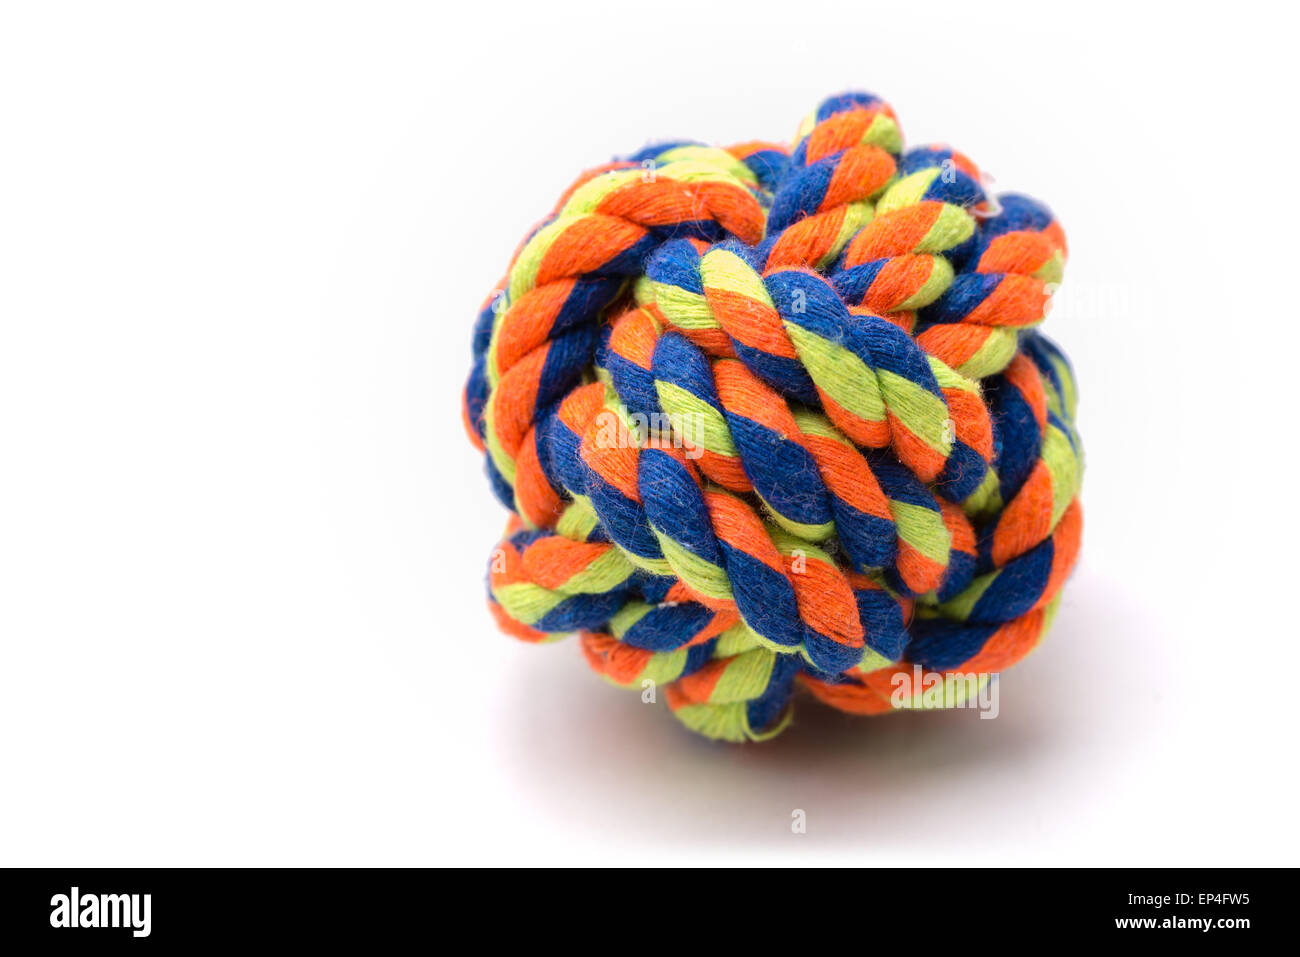 A very colorful ball made from rope tied in a monkey's fist knot used for a dog's toy. - Stock Image